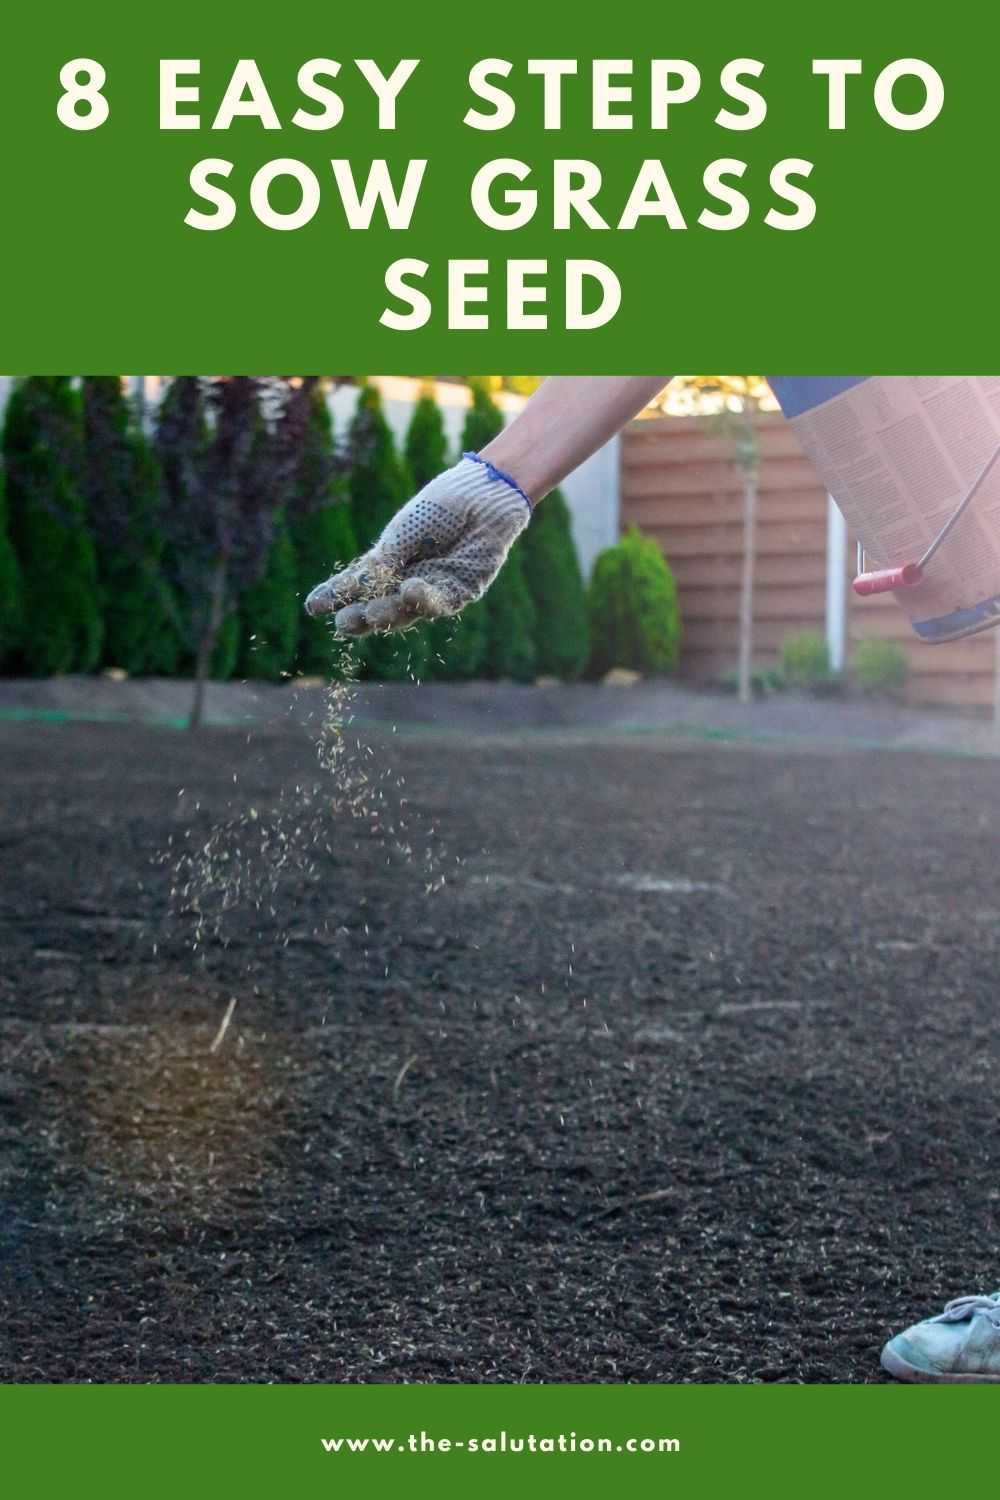 8 Easy Steps to Sow Grass Seed 1